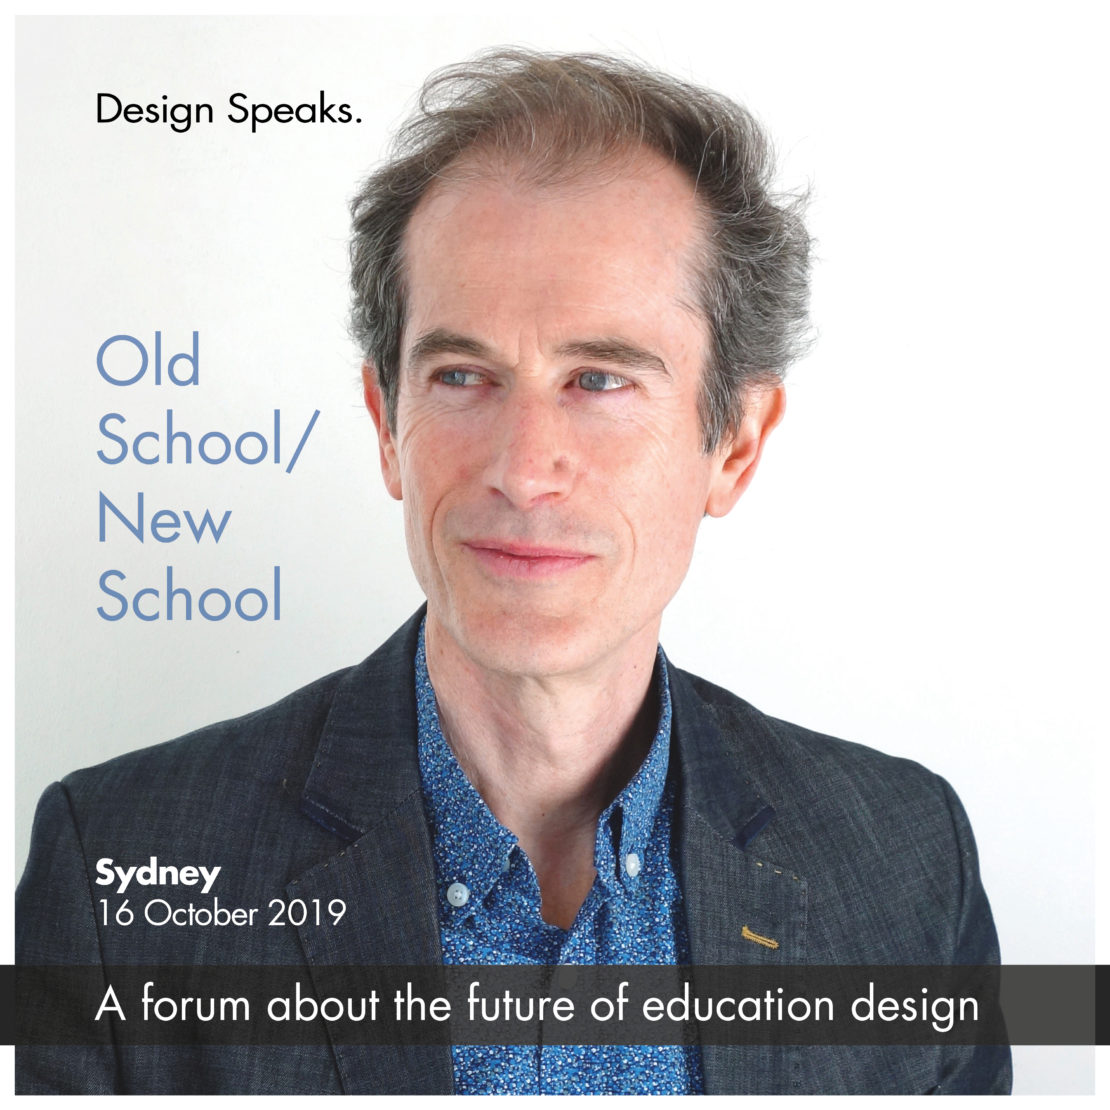 Ian Goodfellow is keynote speaker at 'Old School/New School', Sydney